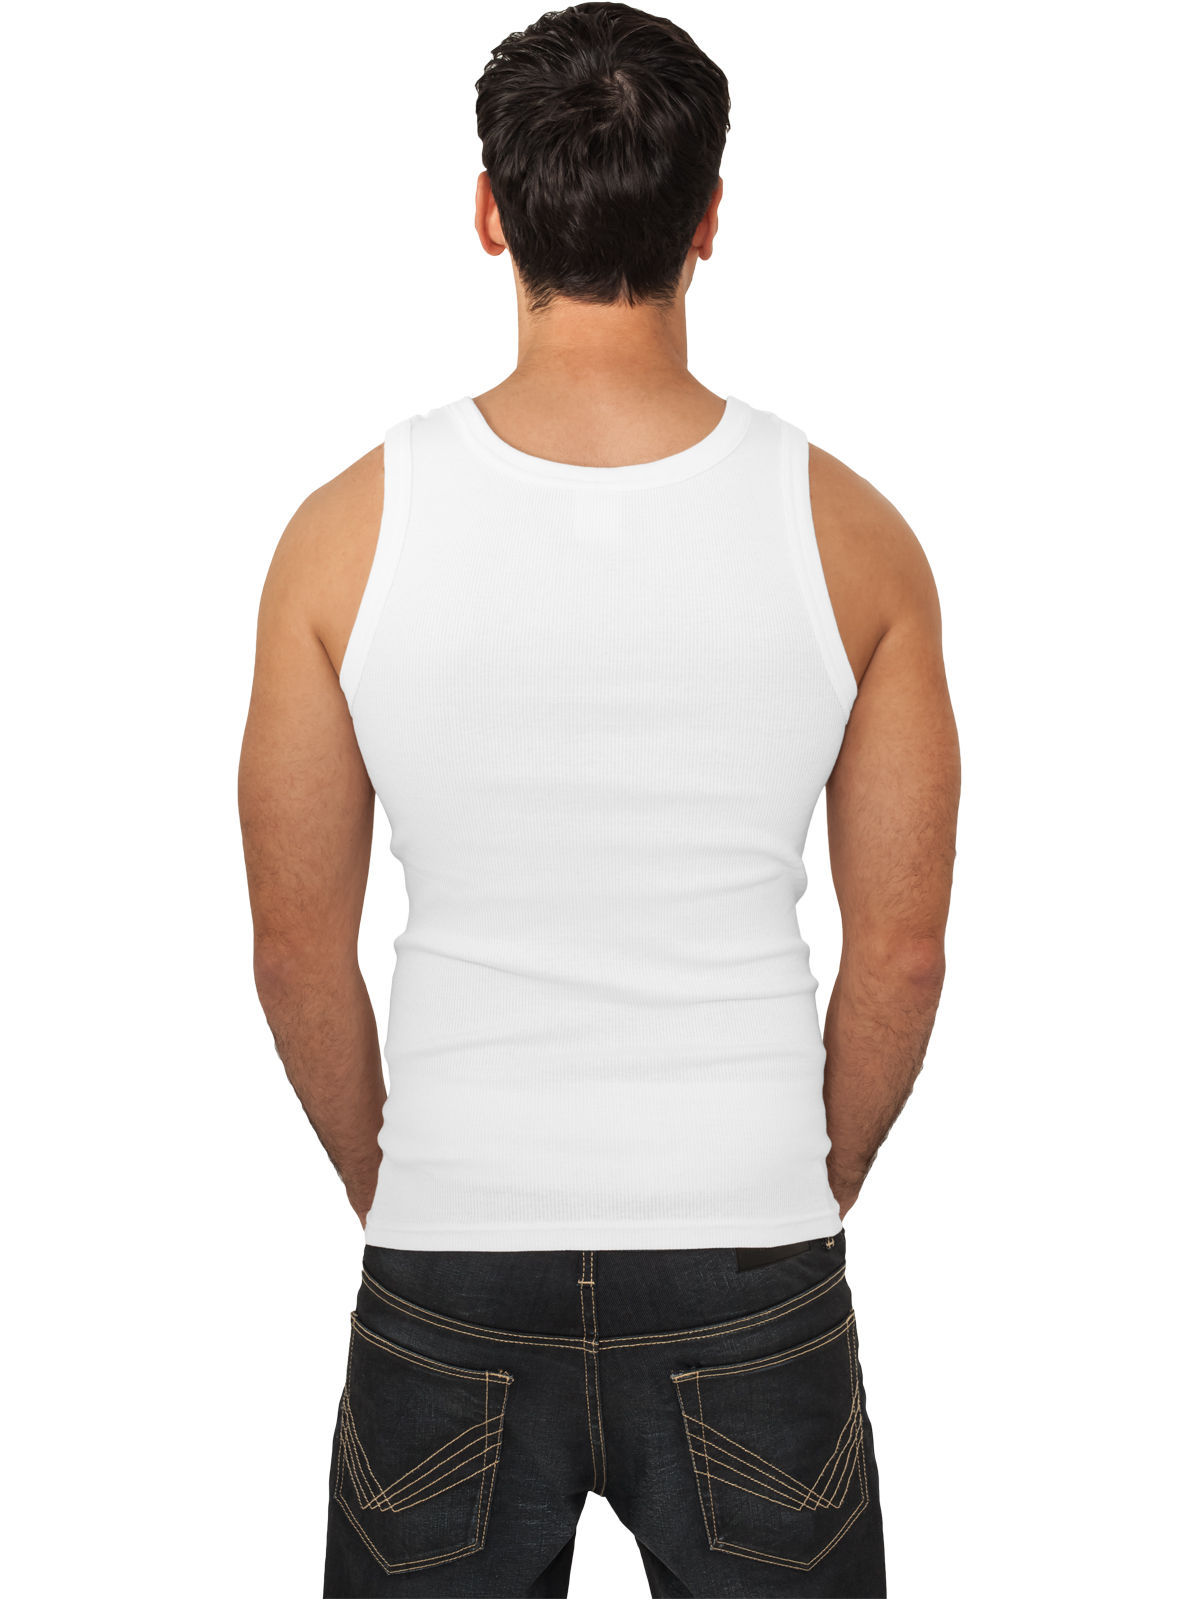 Explore the best selection of men's tank tops in a variety of designs at affordable prices at Old Navy. Get Back to the Basics in Style. Revamp your collection of essential sleeveless tees with our wide array of updated men's tank tops. These must-have classic garments feature clean lines with cuts that are slightly fitted throughout the body.